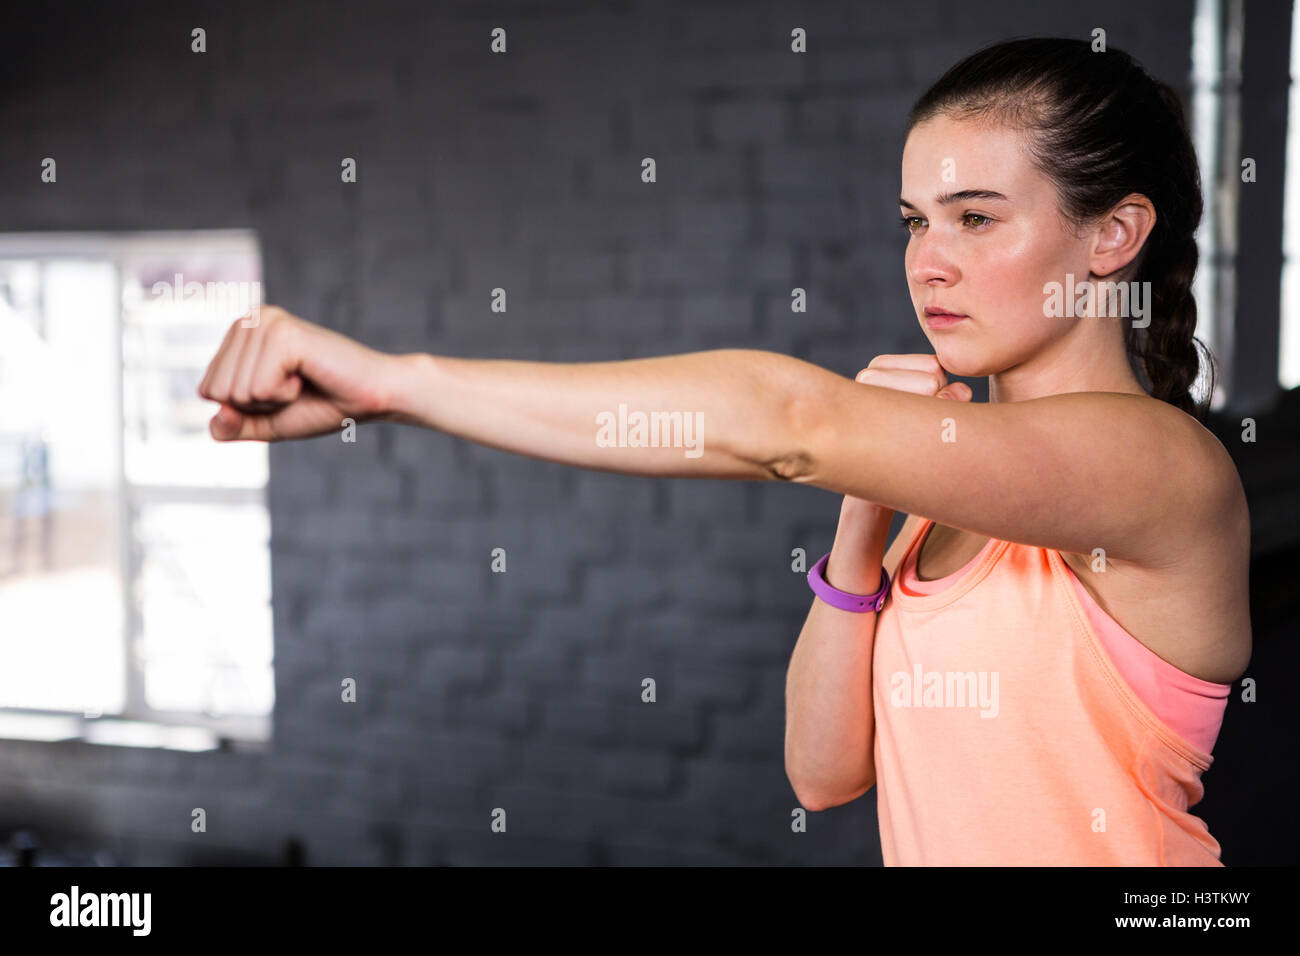 Young woman punching in gym - Stock Image